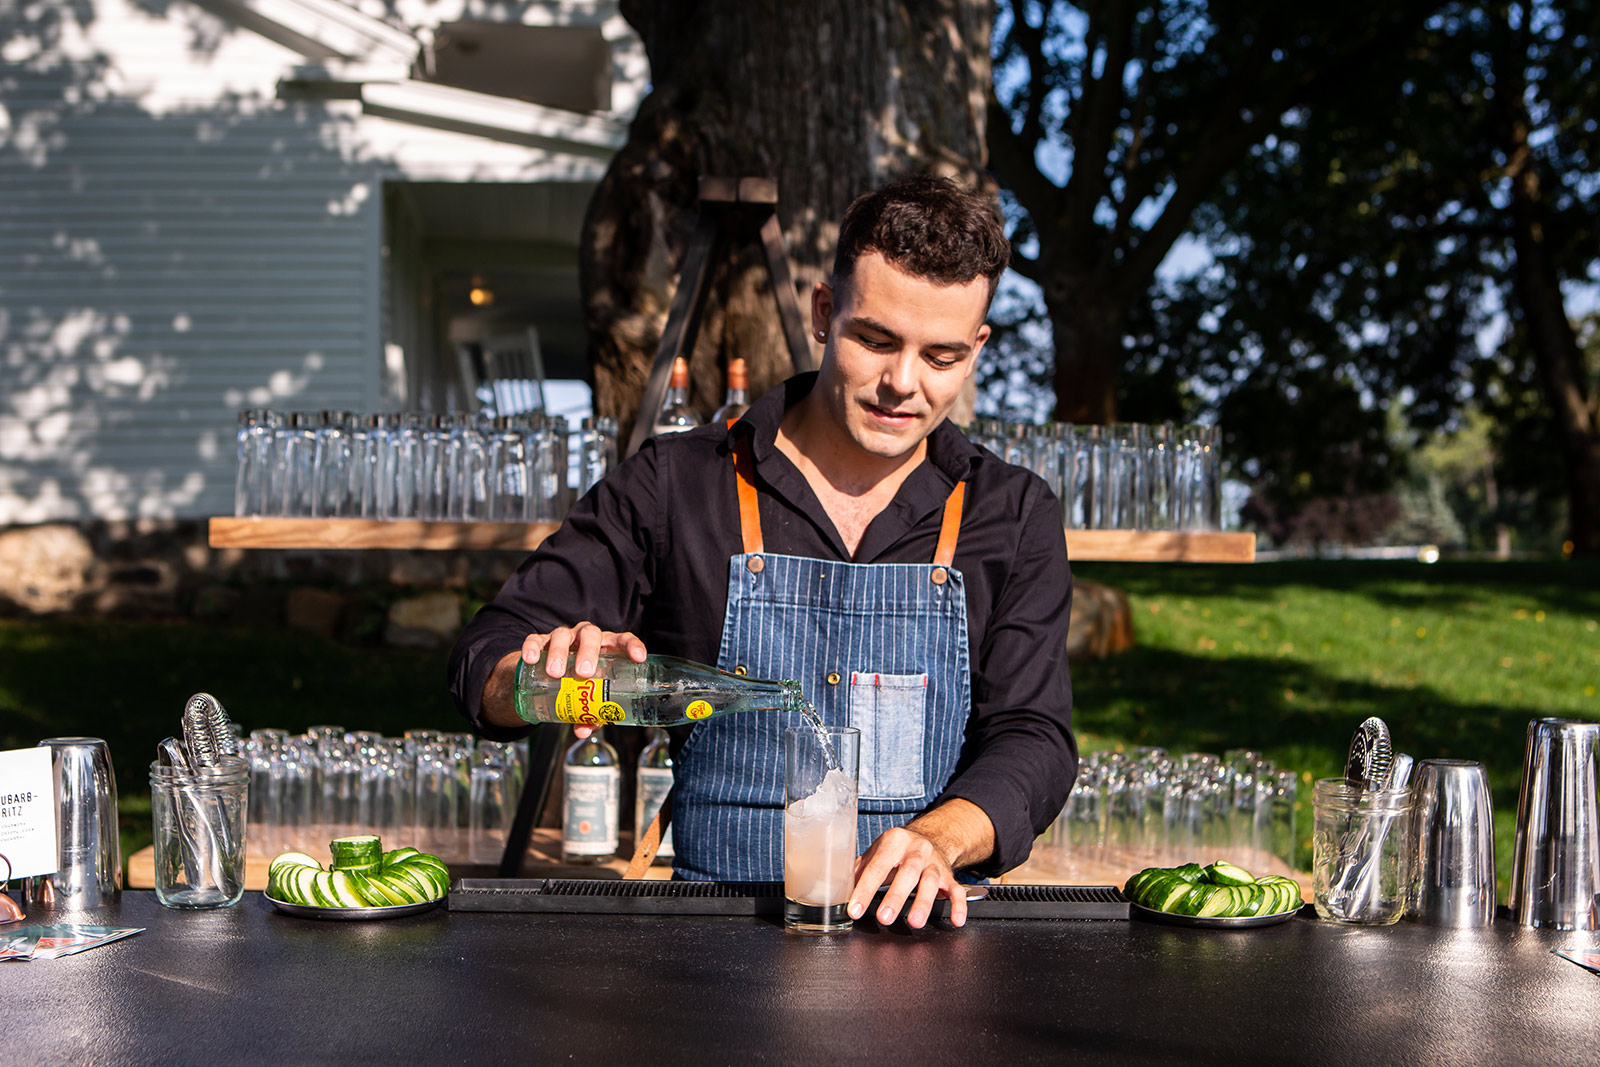 bartender making a drink at a bar outside